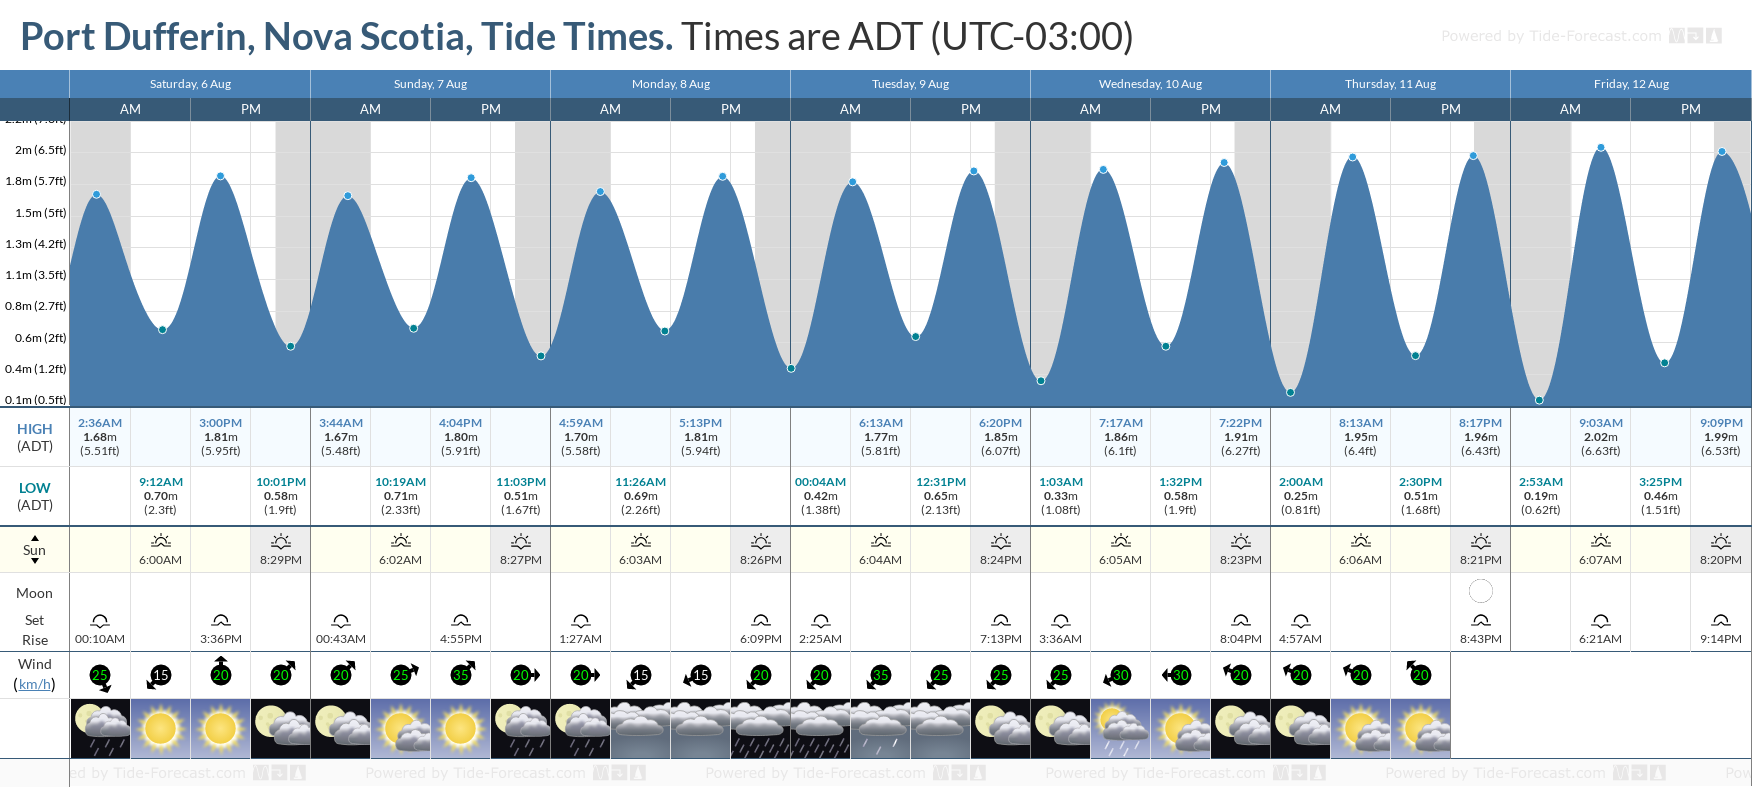 Port Dufferin, Nova Scotia Tide Chart including high and low tide tide times for the next 7 days